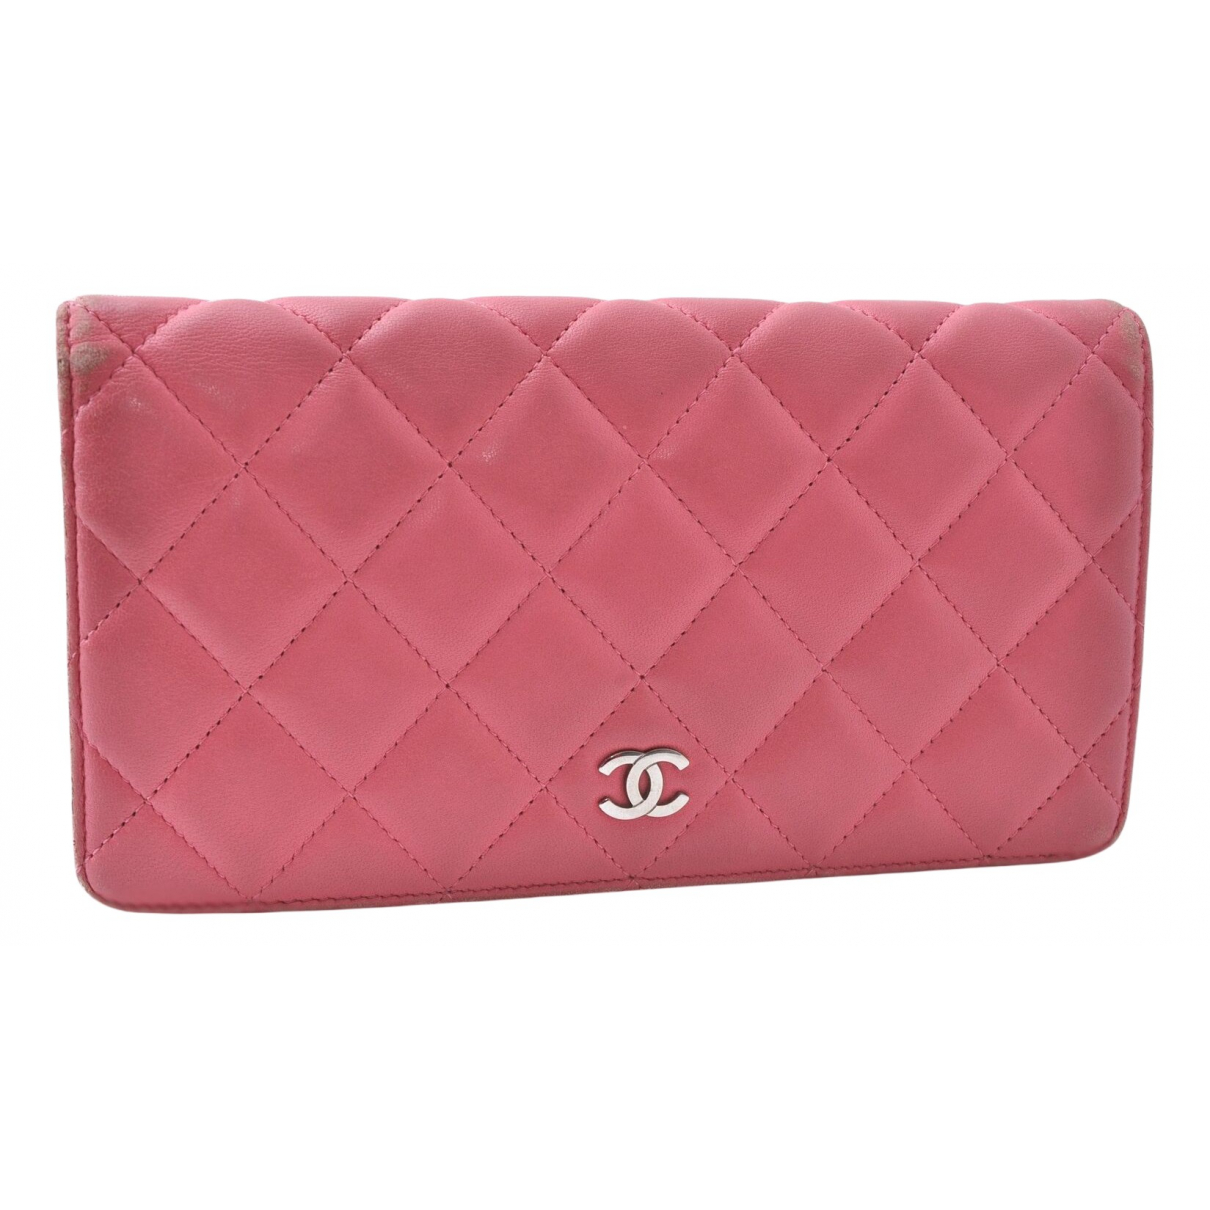 Chanel Timeless/Classique Pink Leather wallet for Women N